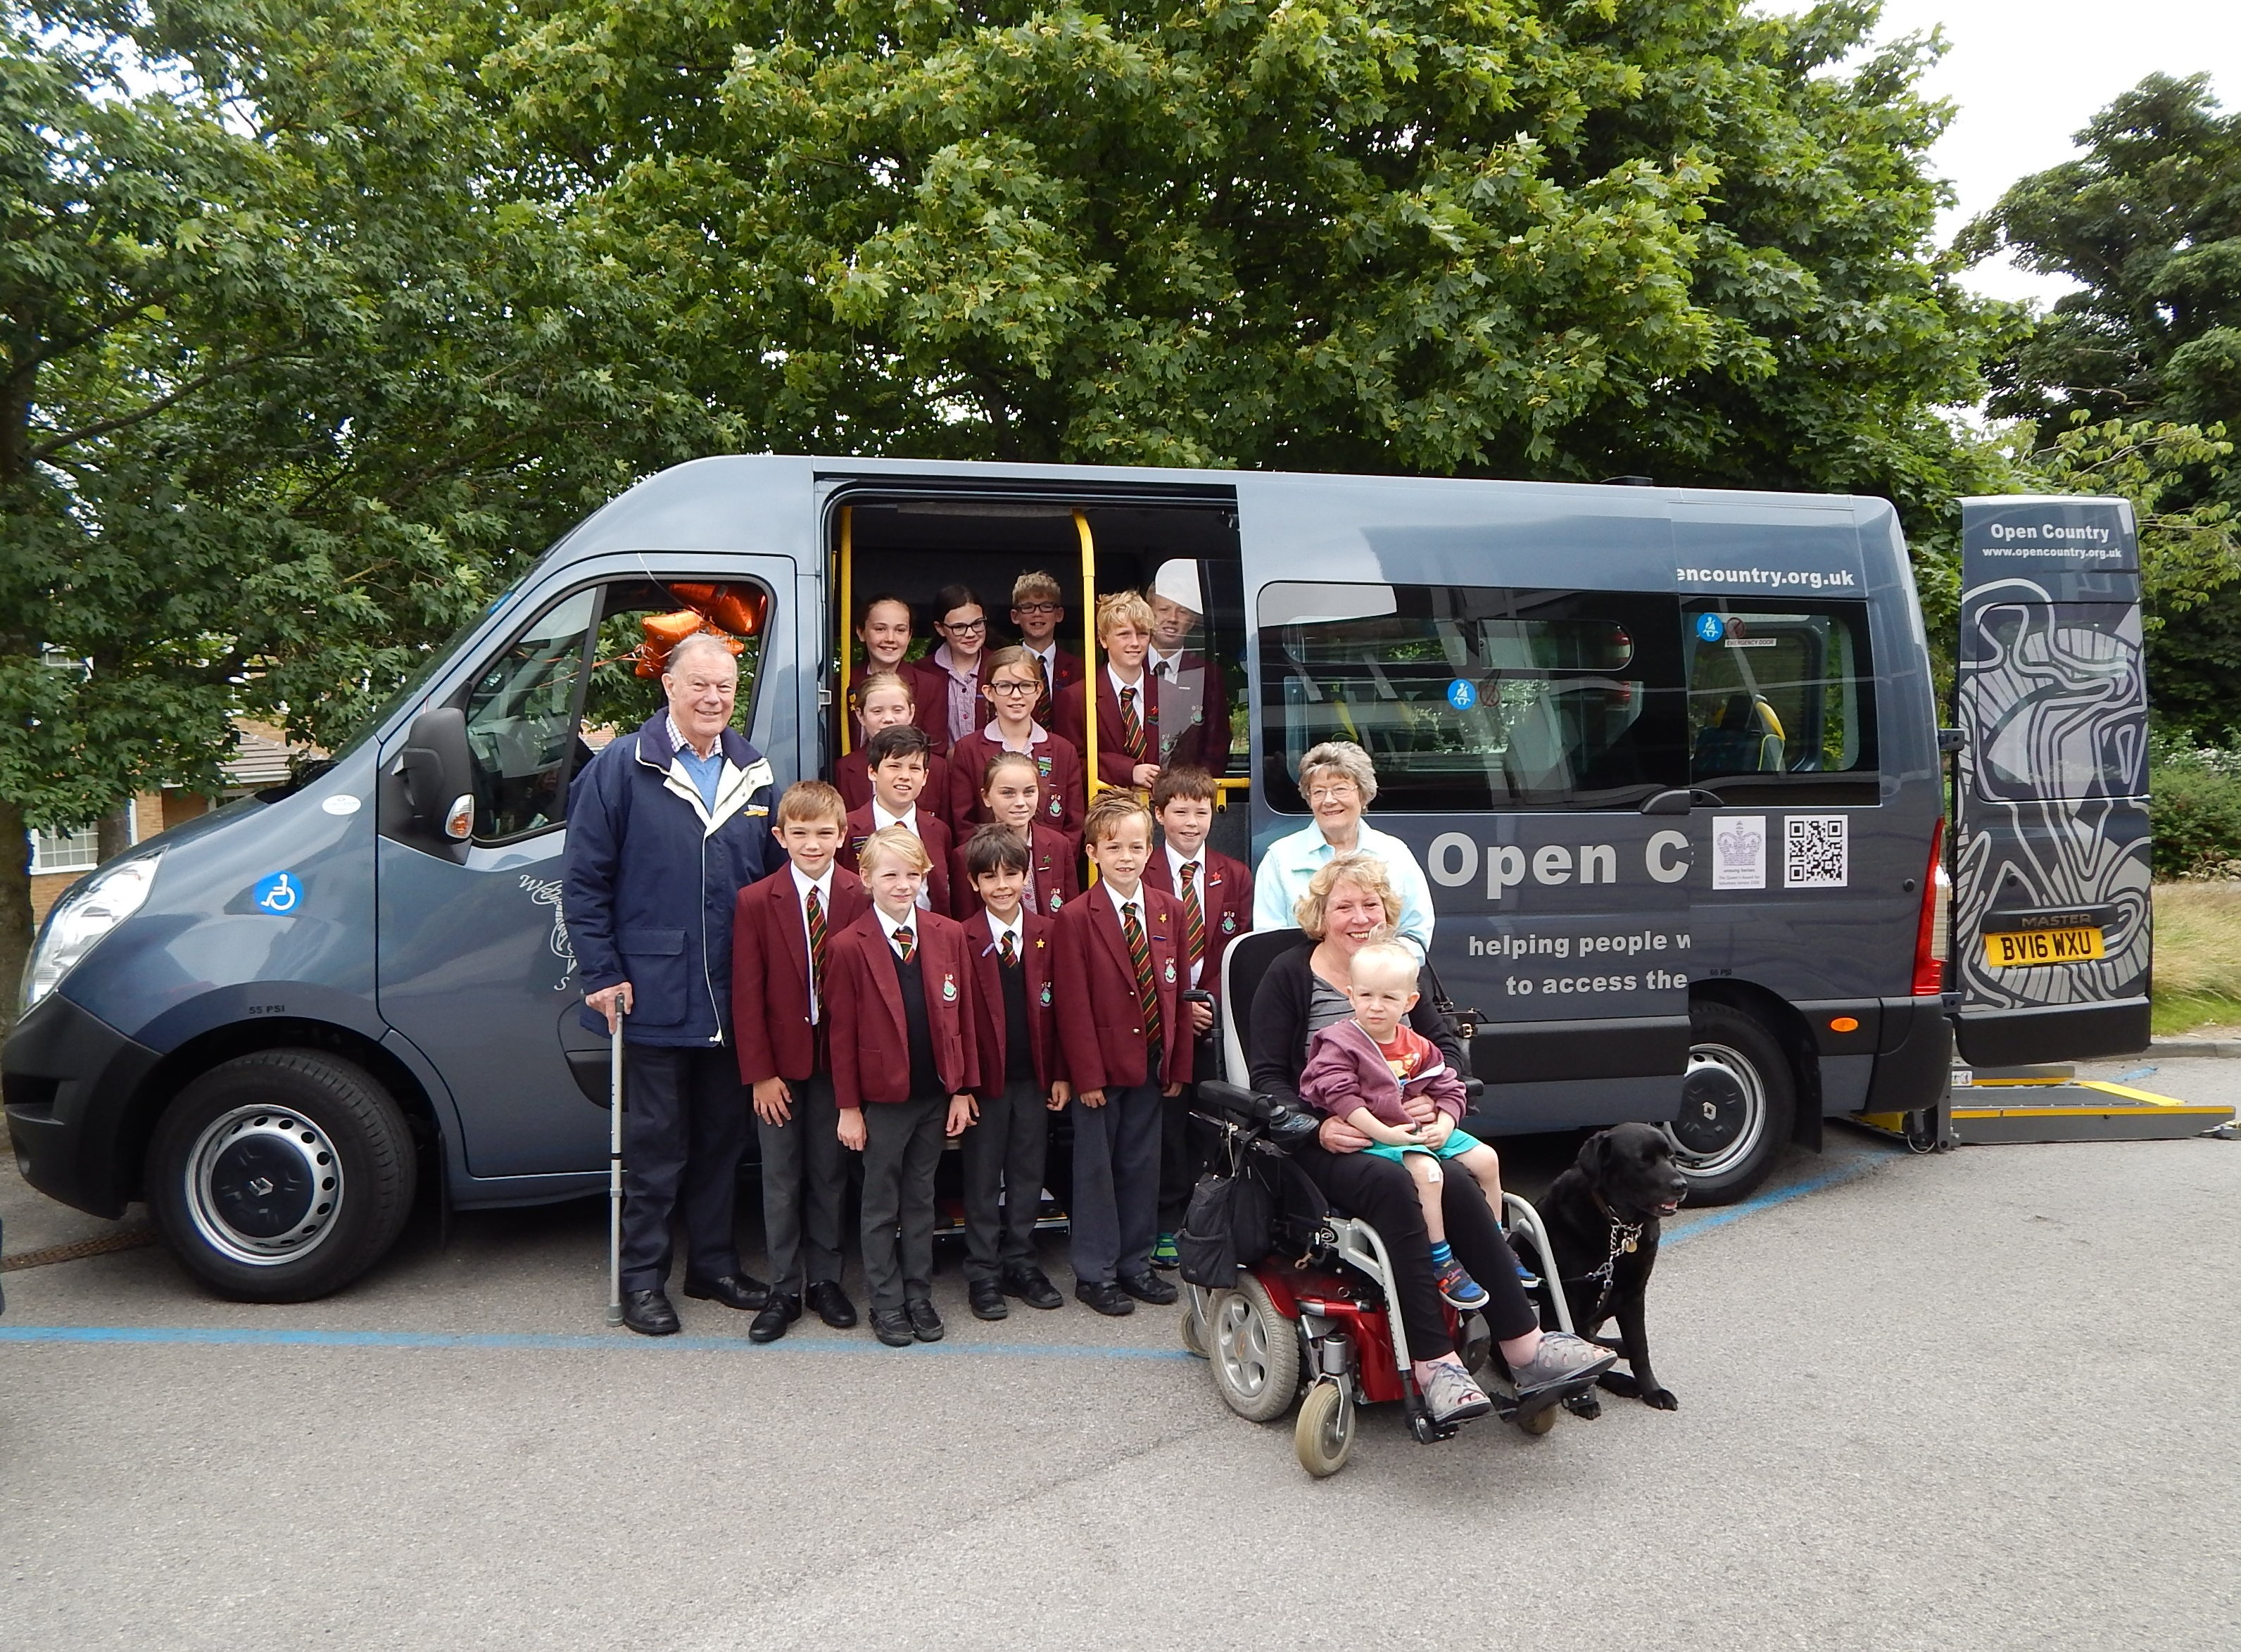 A group of school children standing next to a minibus with a lady in a wheelchair and her assistance dog